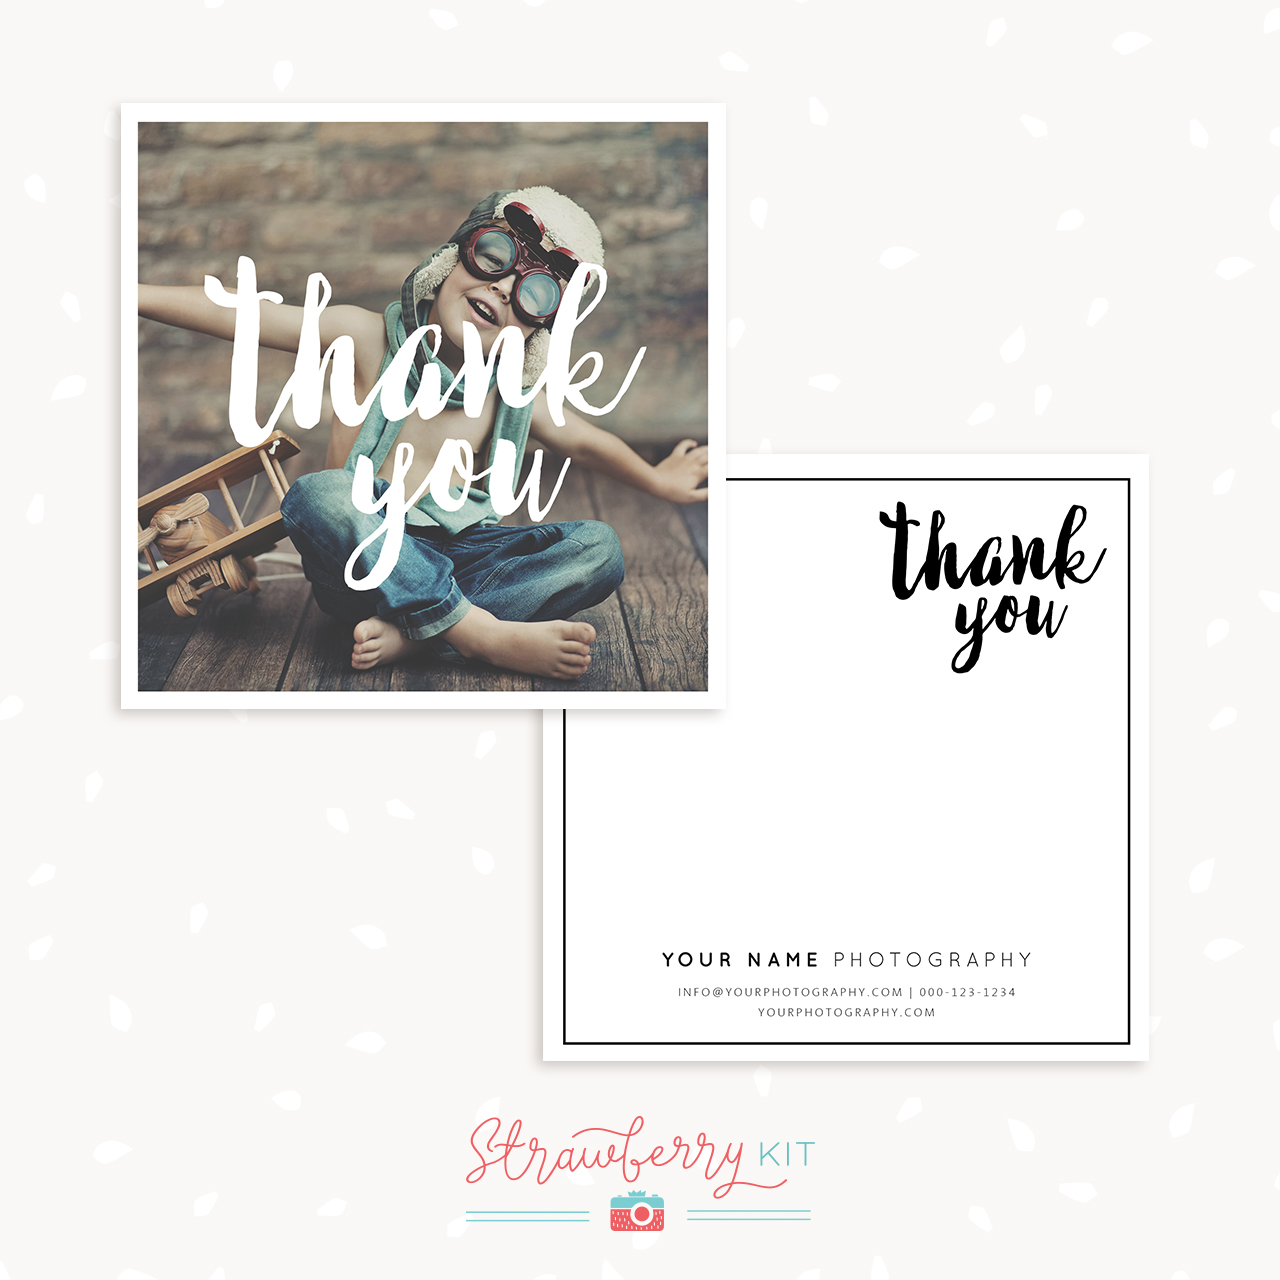 Thank You Note Card Template Strawberry Kit